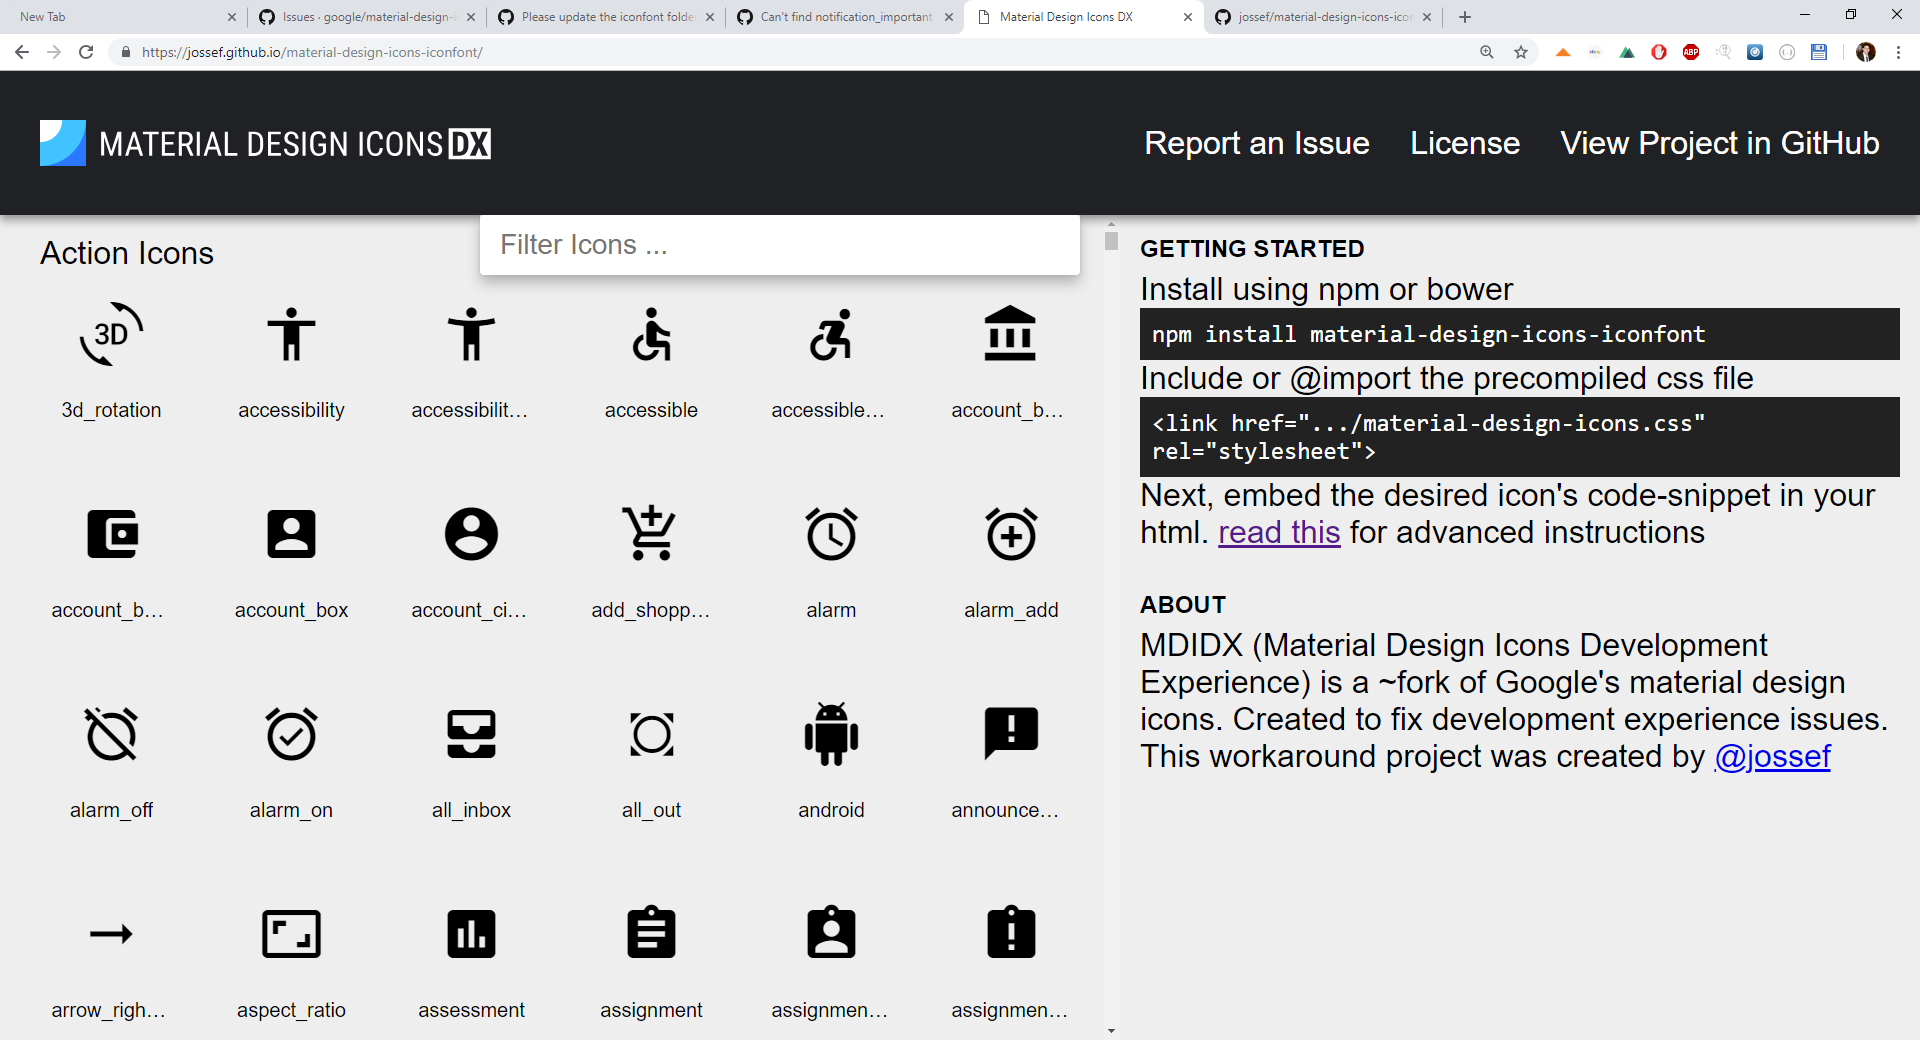 MD icons not working in IE11 · Issue #752 · google/material